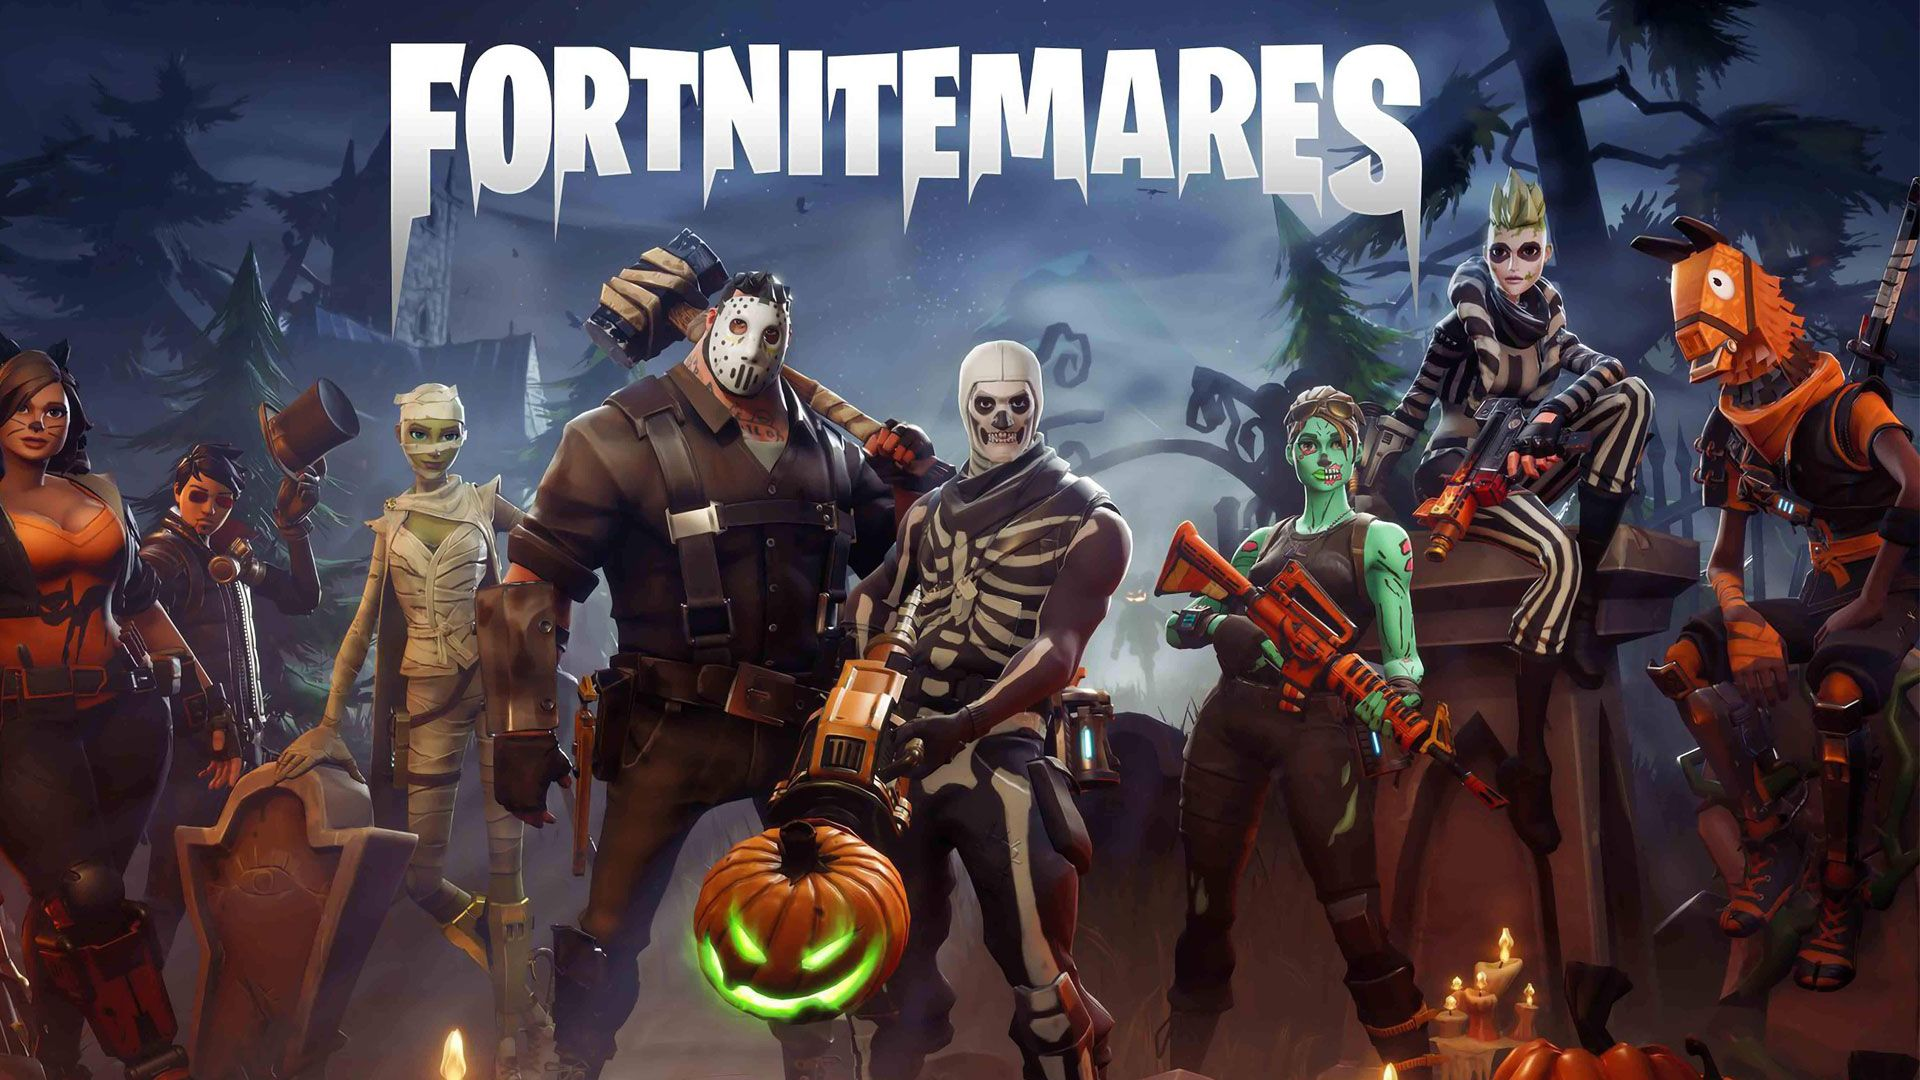 Video Game Fortnite Hd Official Wallpaper Fortnite Gaming Wallpapers Halloween Design